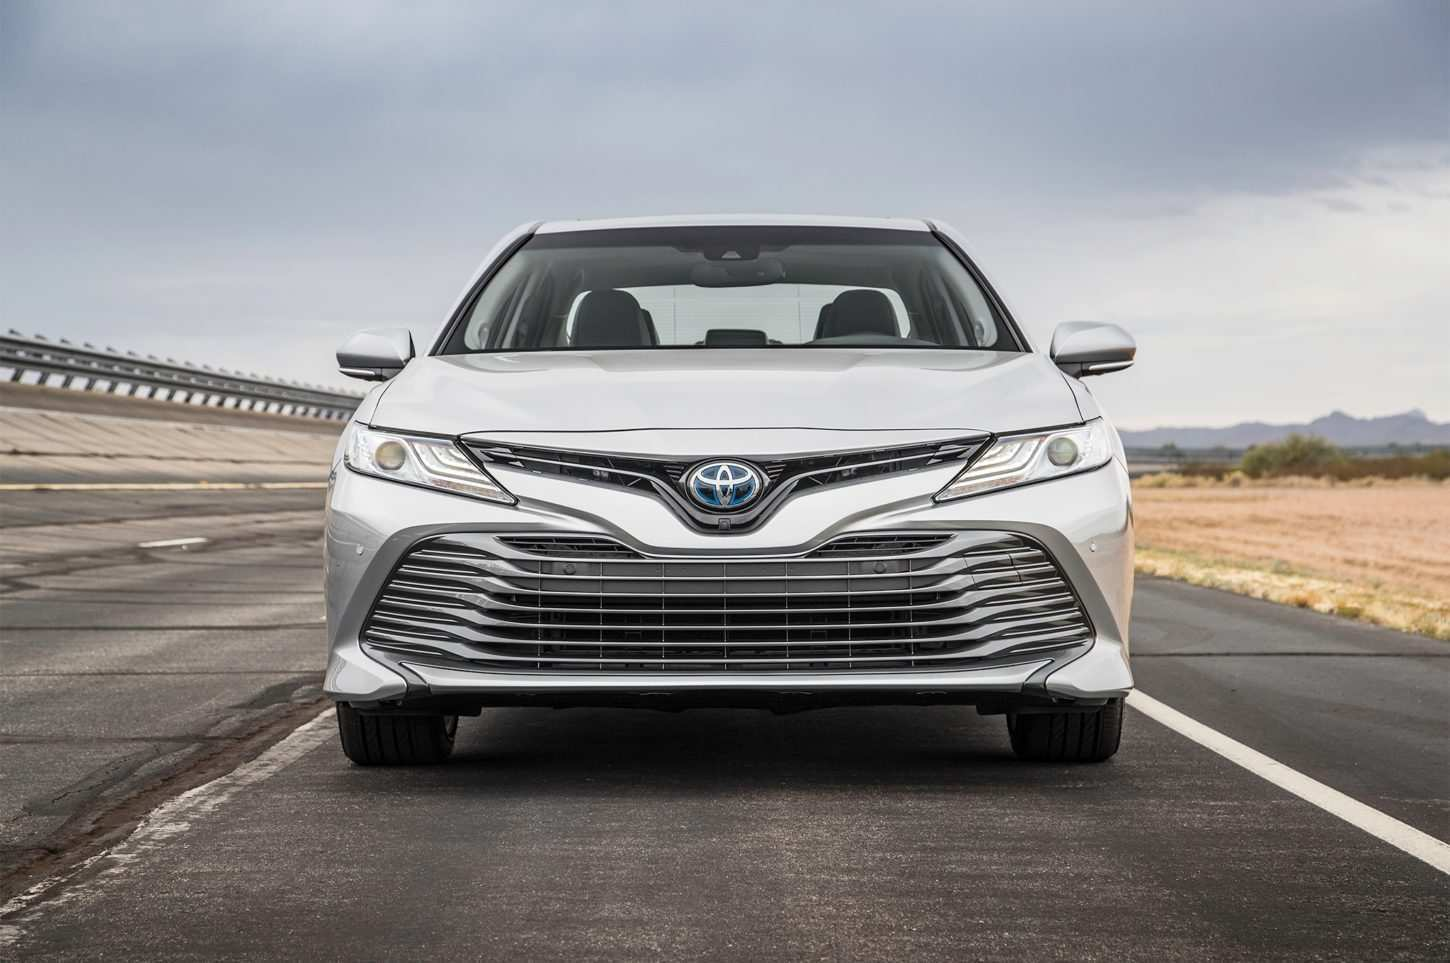 77 The Best 2019 Toyota Venza Photos